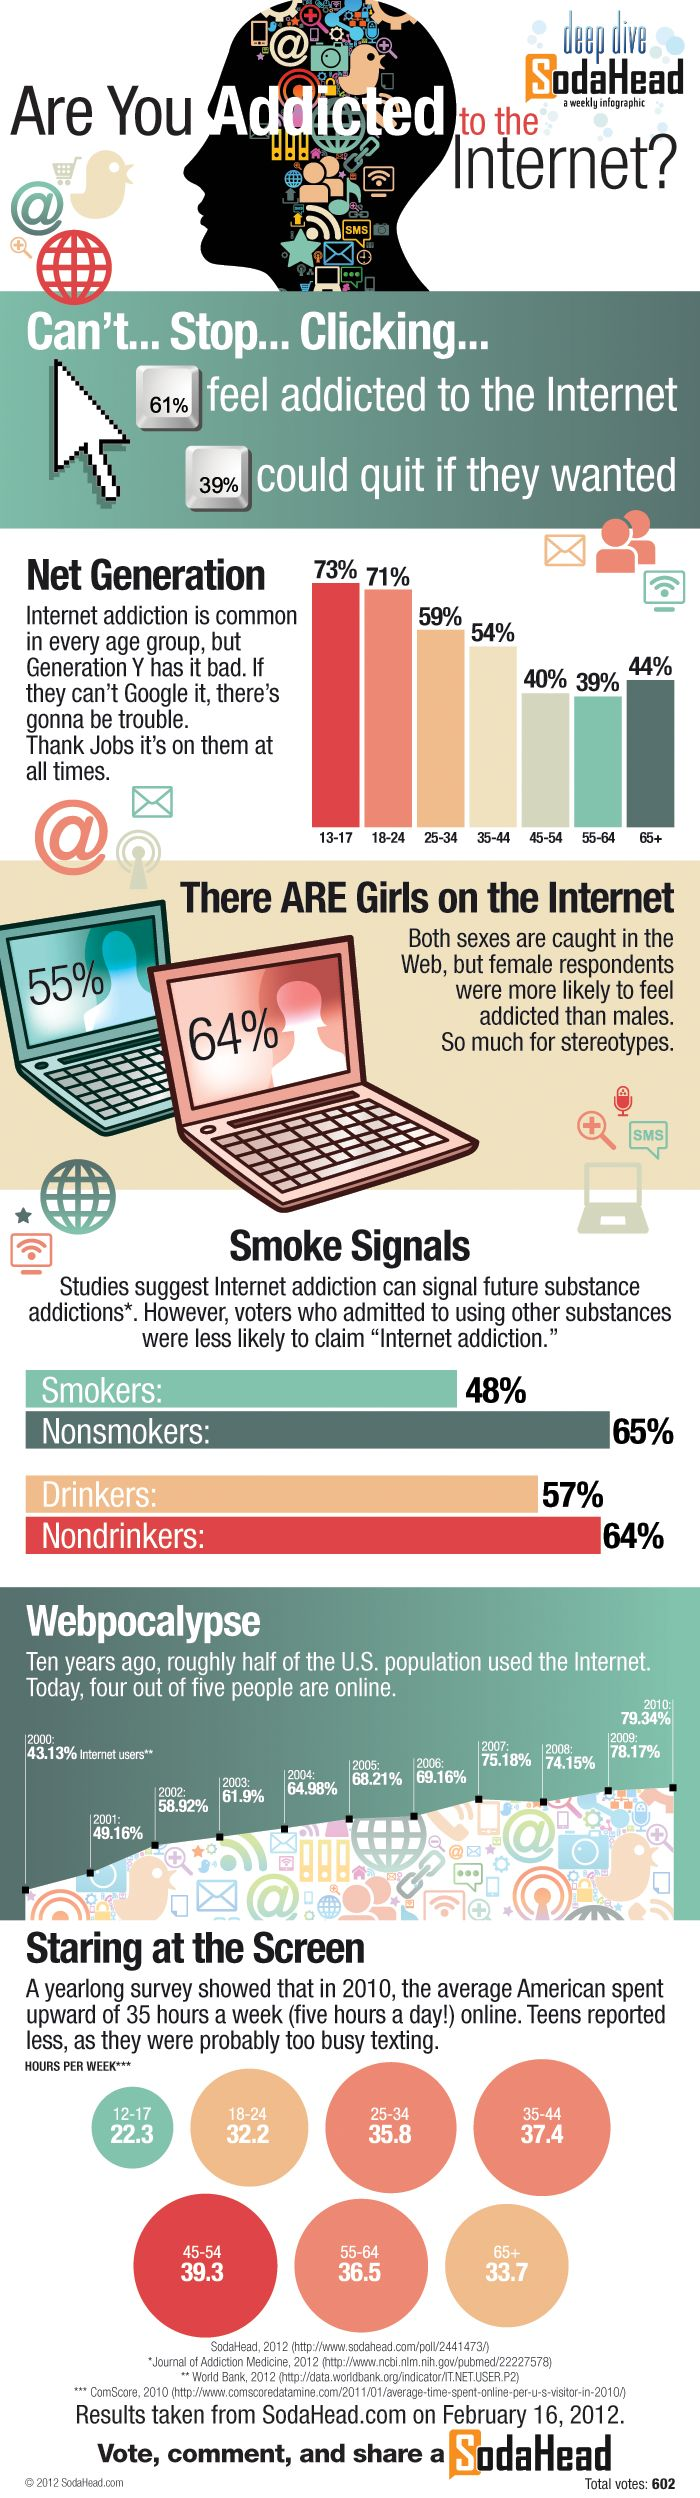 Why Most People Say They Are Addicted to the Internet [Infographic]